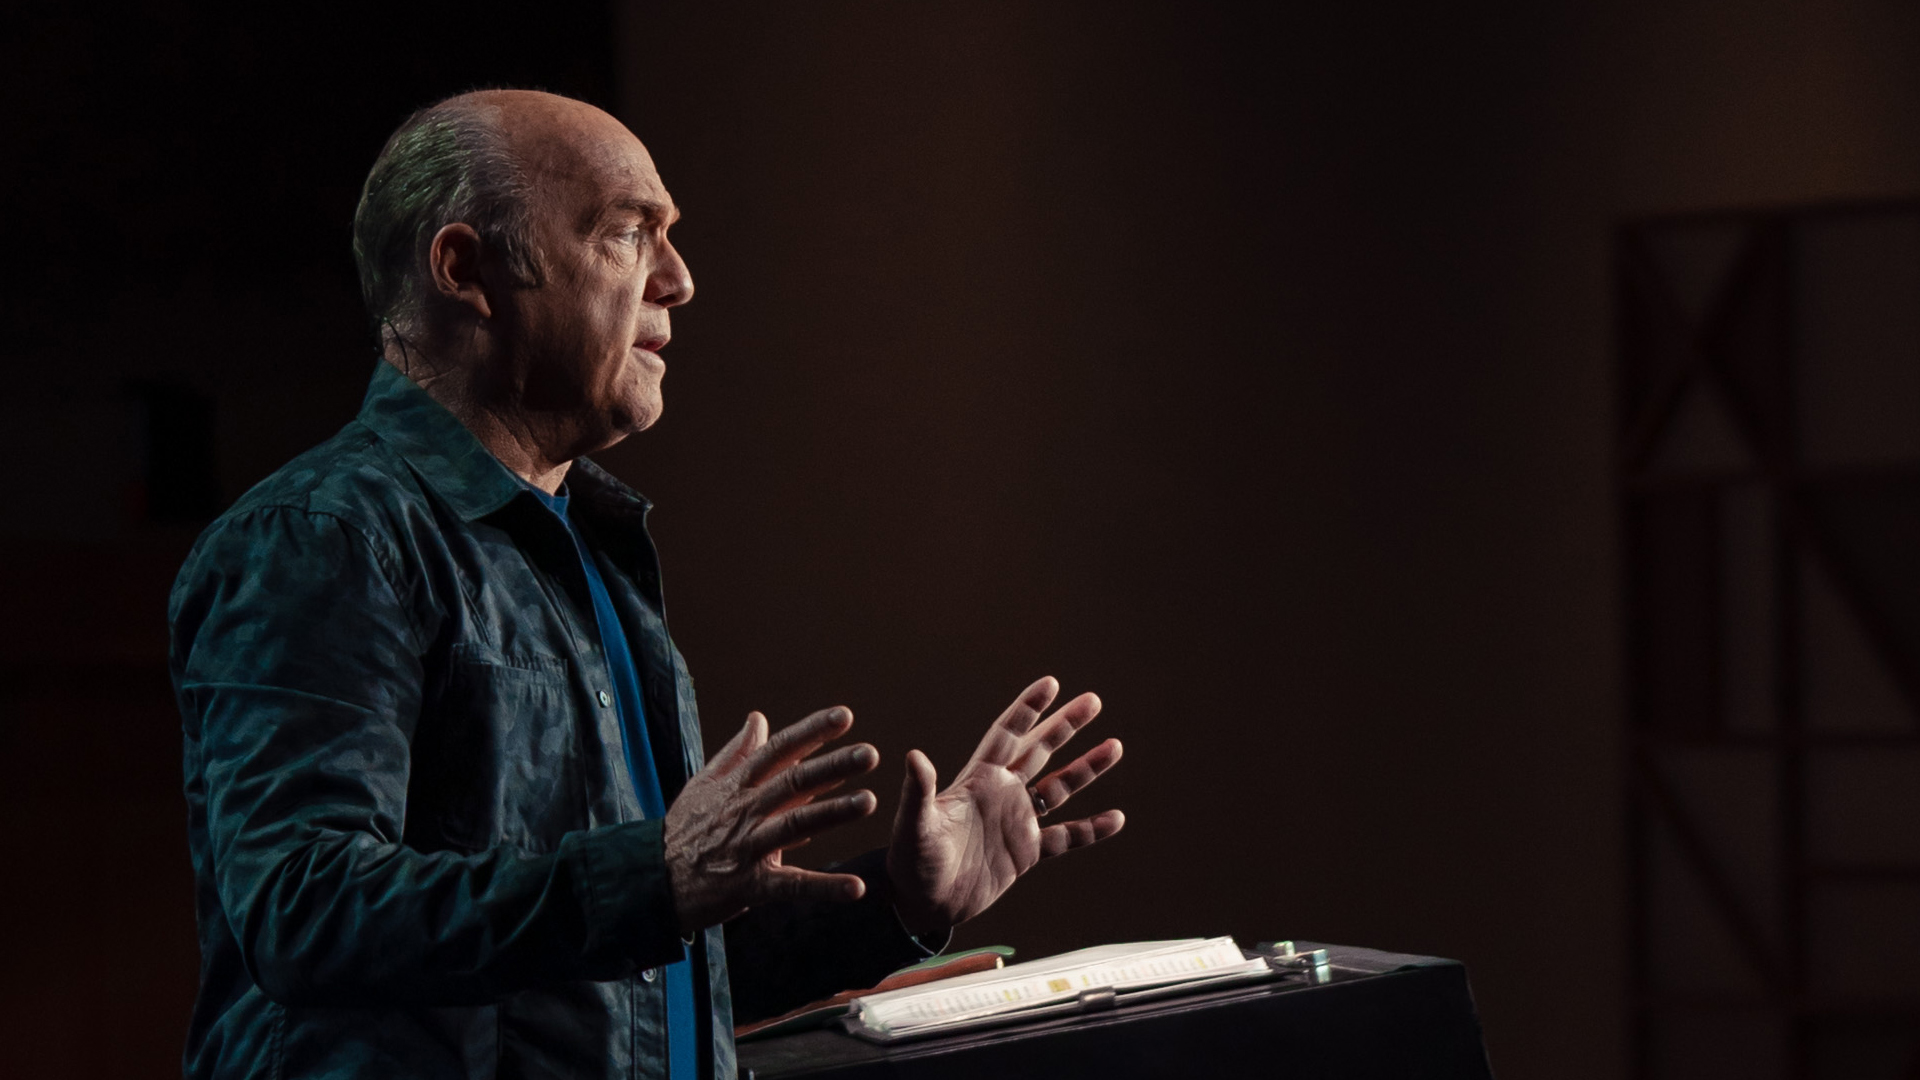 Pastor Greg Laurie preaches at a pulpit